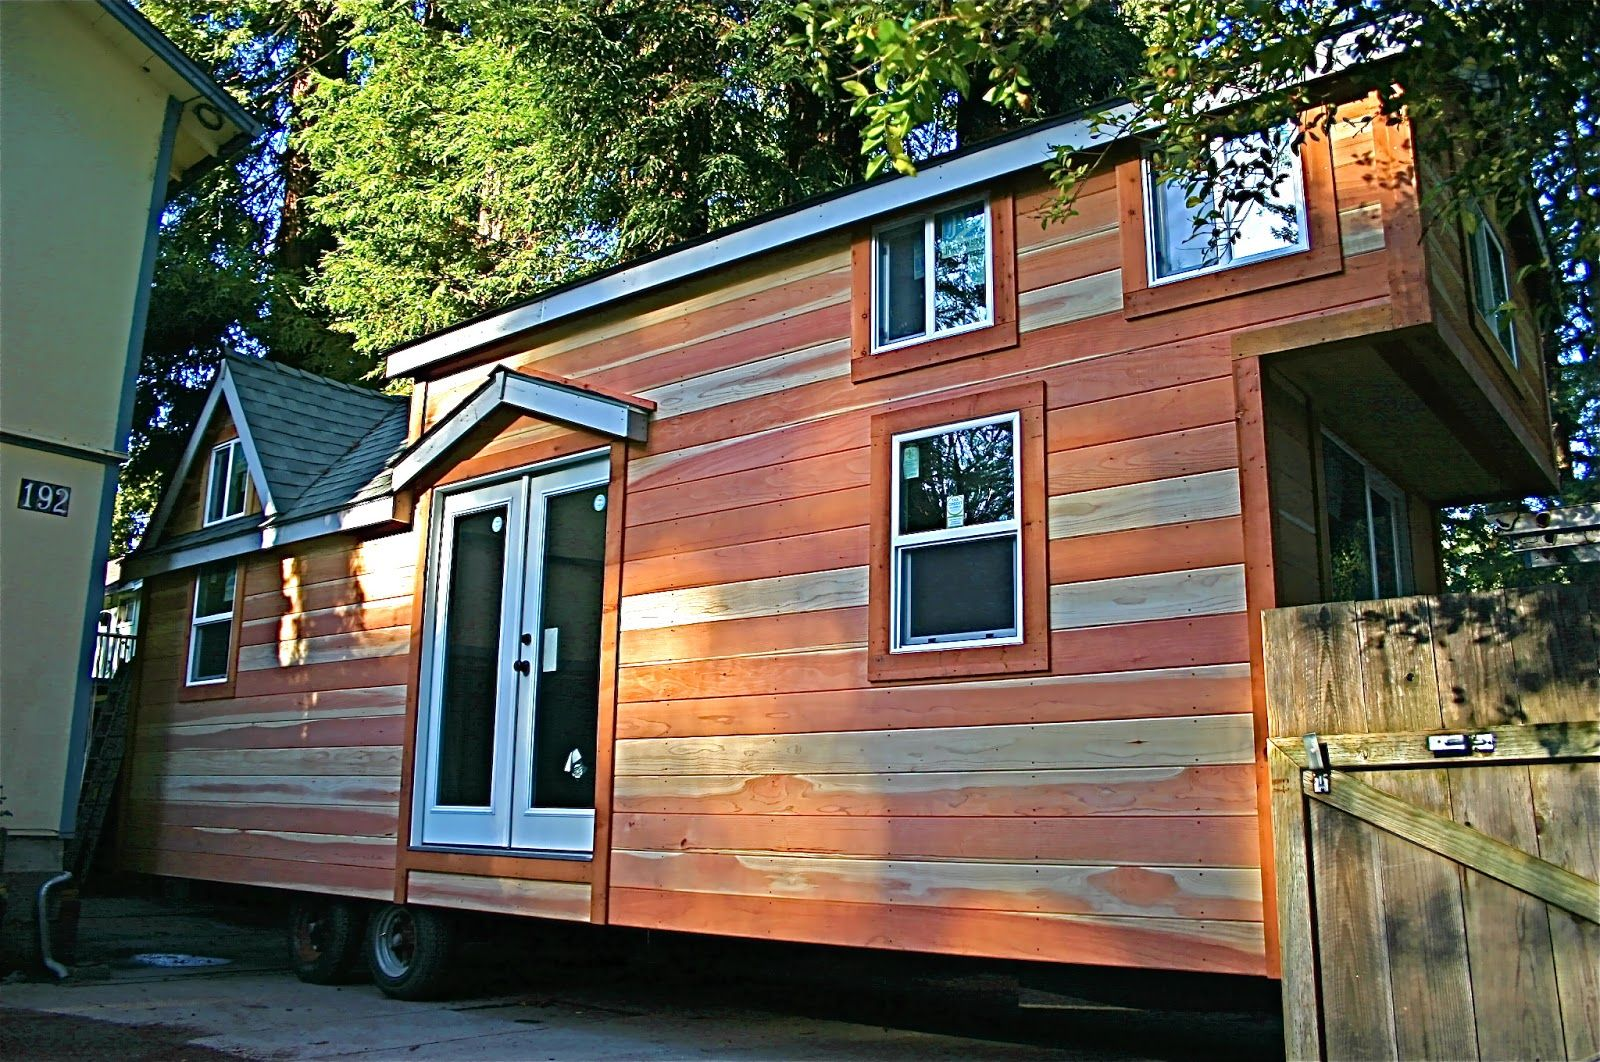 Tiny Home Designs: Molecule Builds Another Spacious Tiny Home On A Trailer